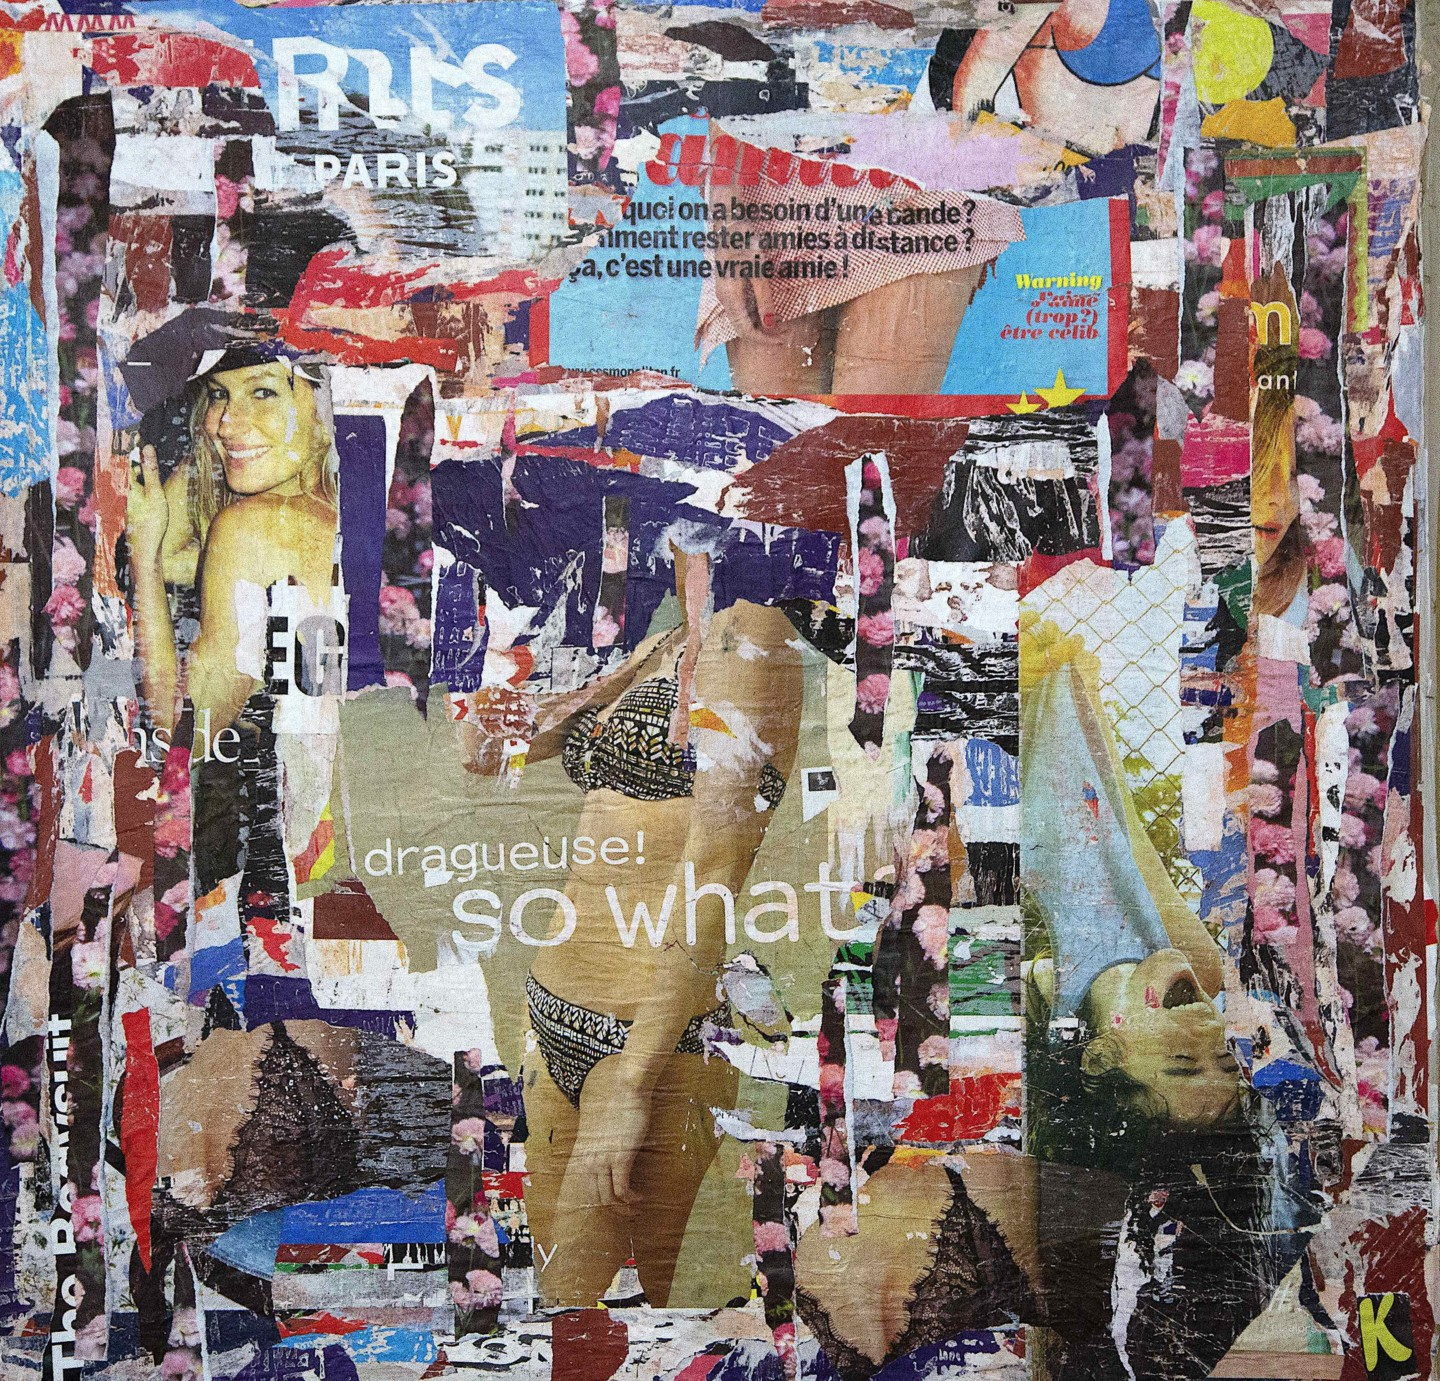 Dominique Kerkhove (DomKcollages) - Free,... so what !